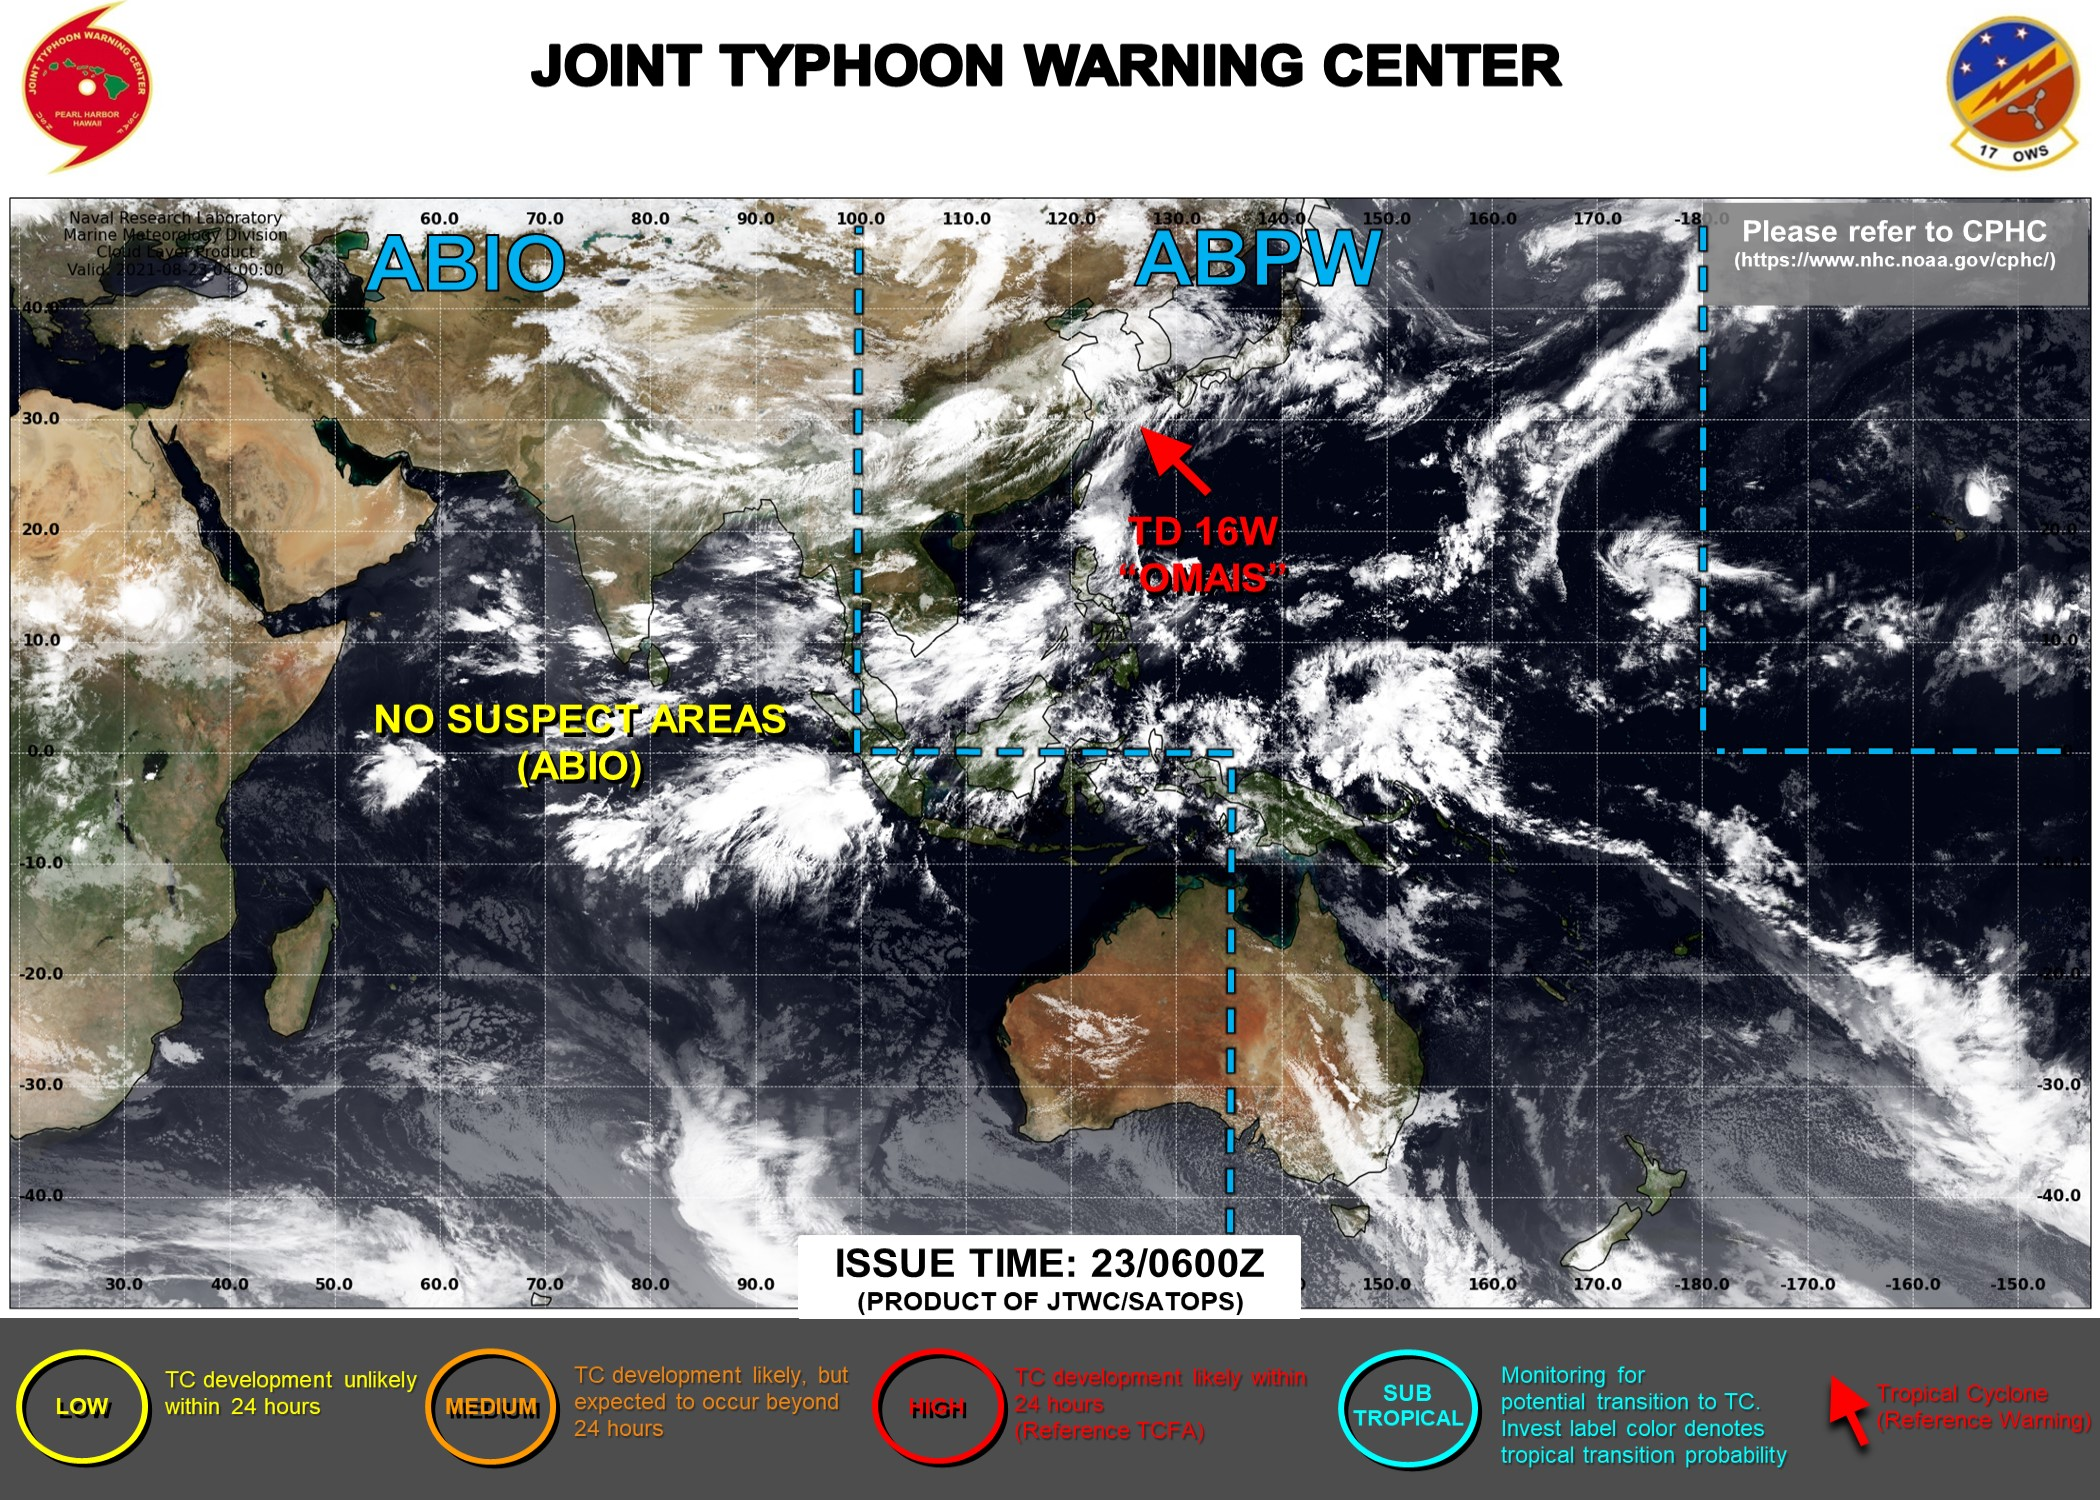 JTWC ARE ISSUING 6HOURLY WARNINGS AND 3HOURLY SATELLITE BULLETINS ON 16W.